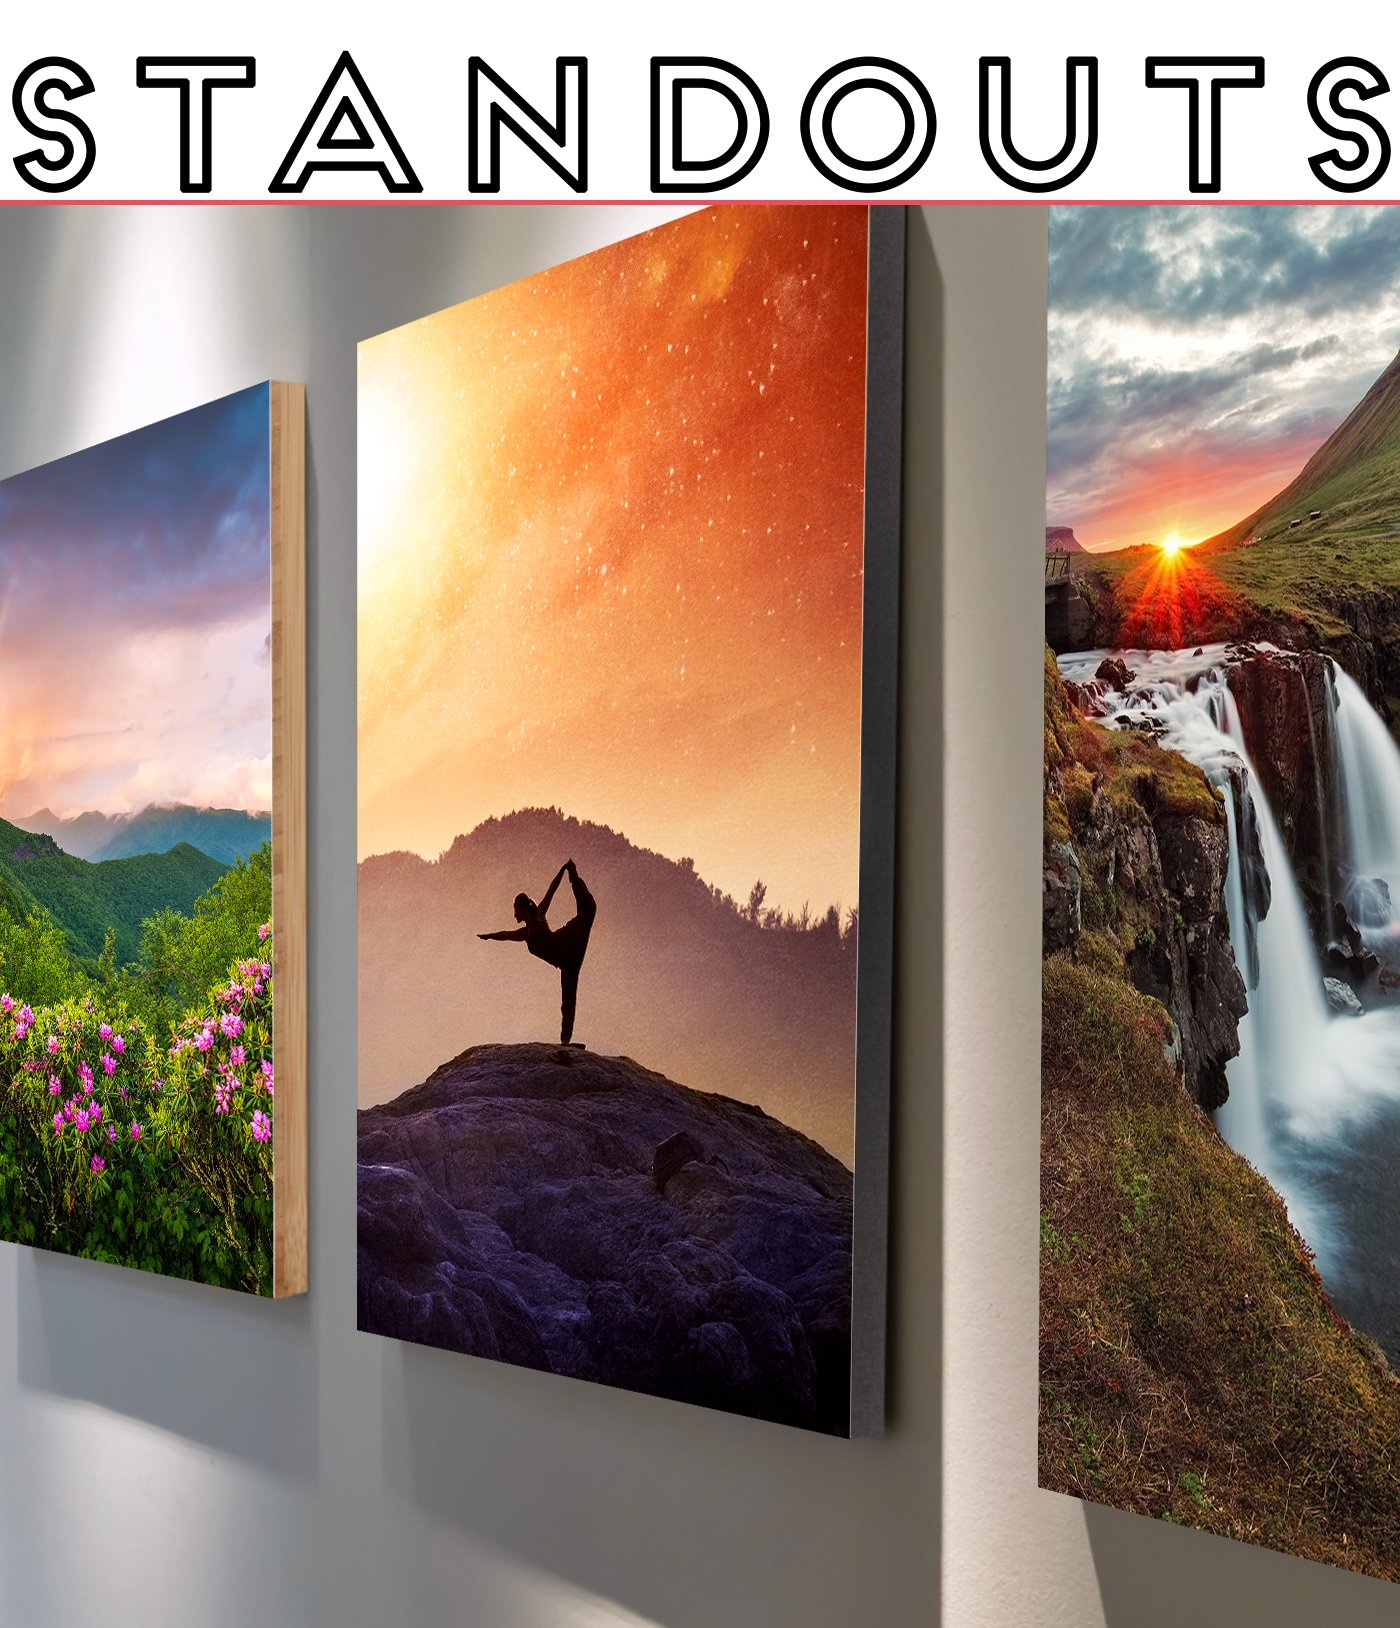 Metal Prints with Standout Mounts Buy One Get One Free